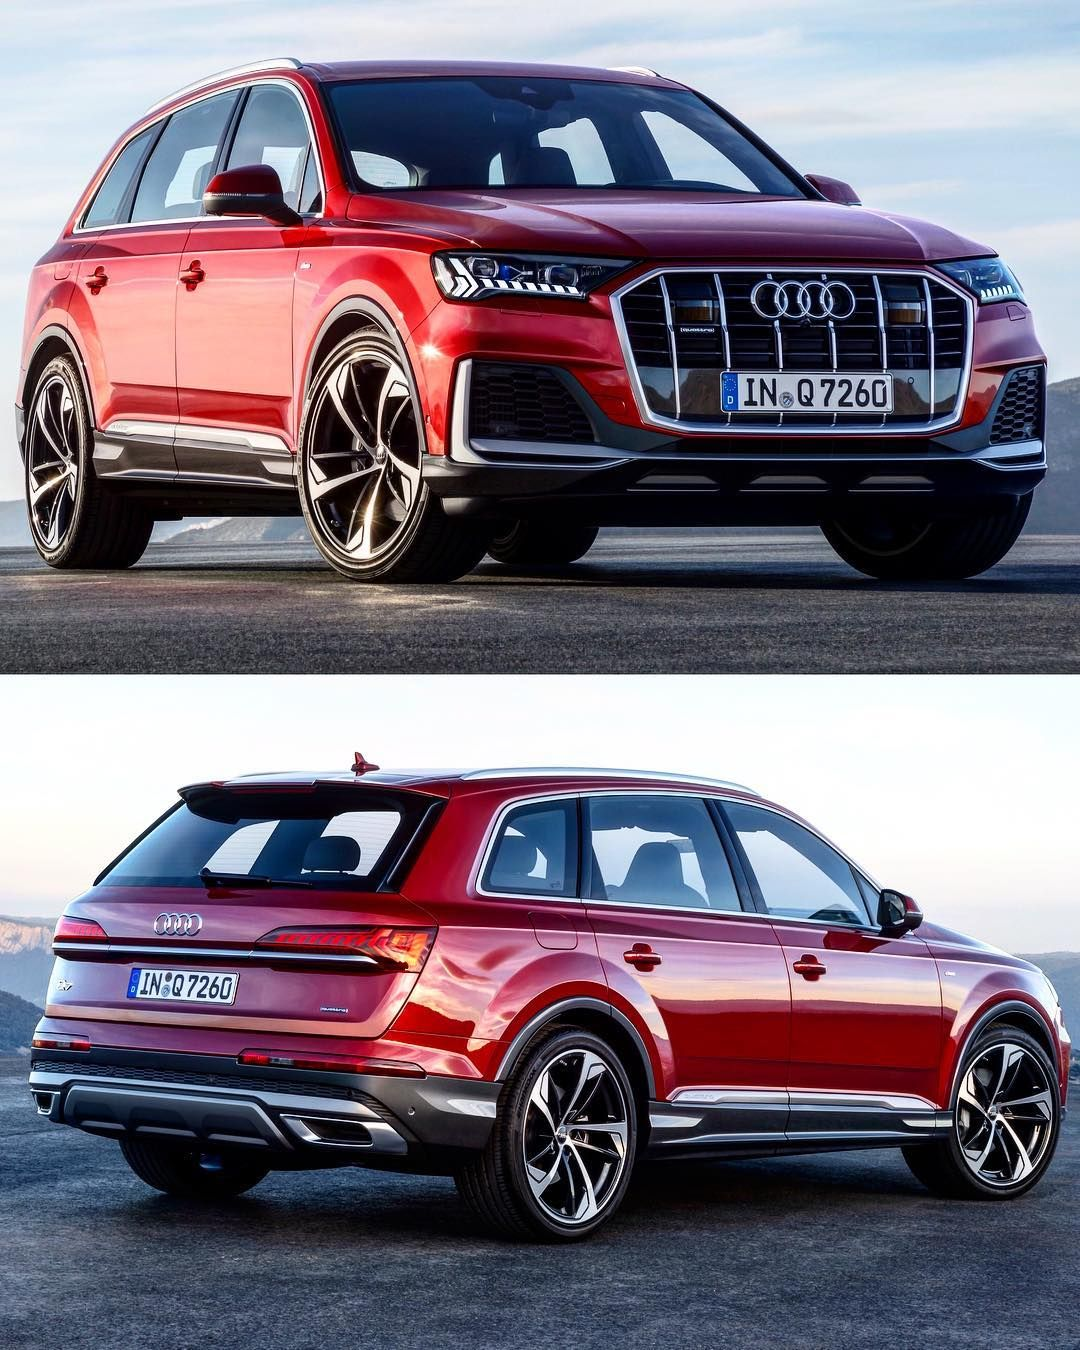 100 Audi Passion On Instagram 2020 Q7 Facelift Audi Just Revealed The Long Awaited Facelift For The Large Q7 And It Looks Stunni Audi Luxury Suv Audi Q7